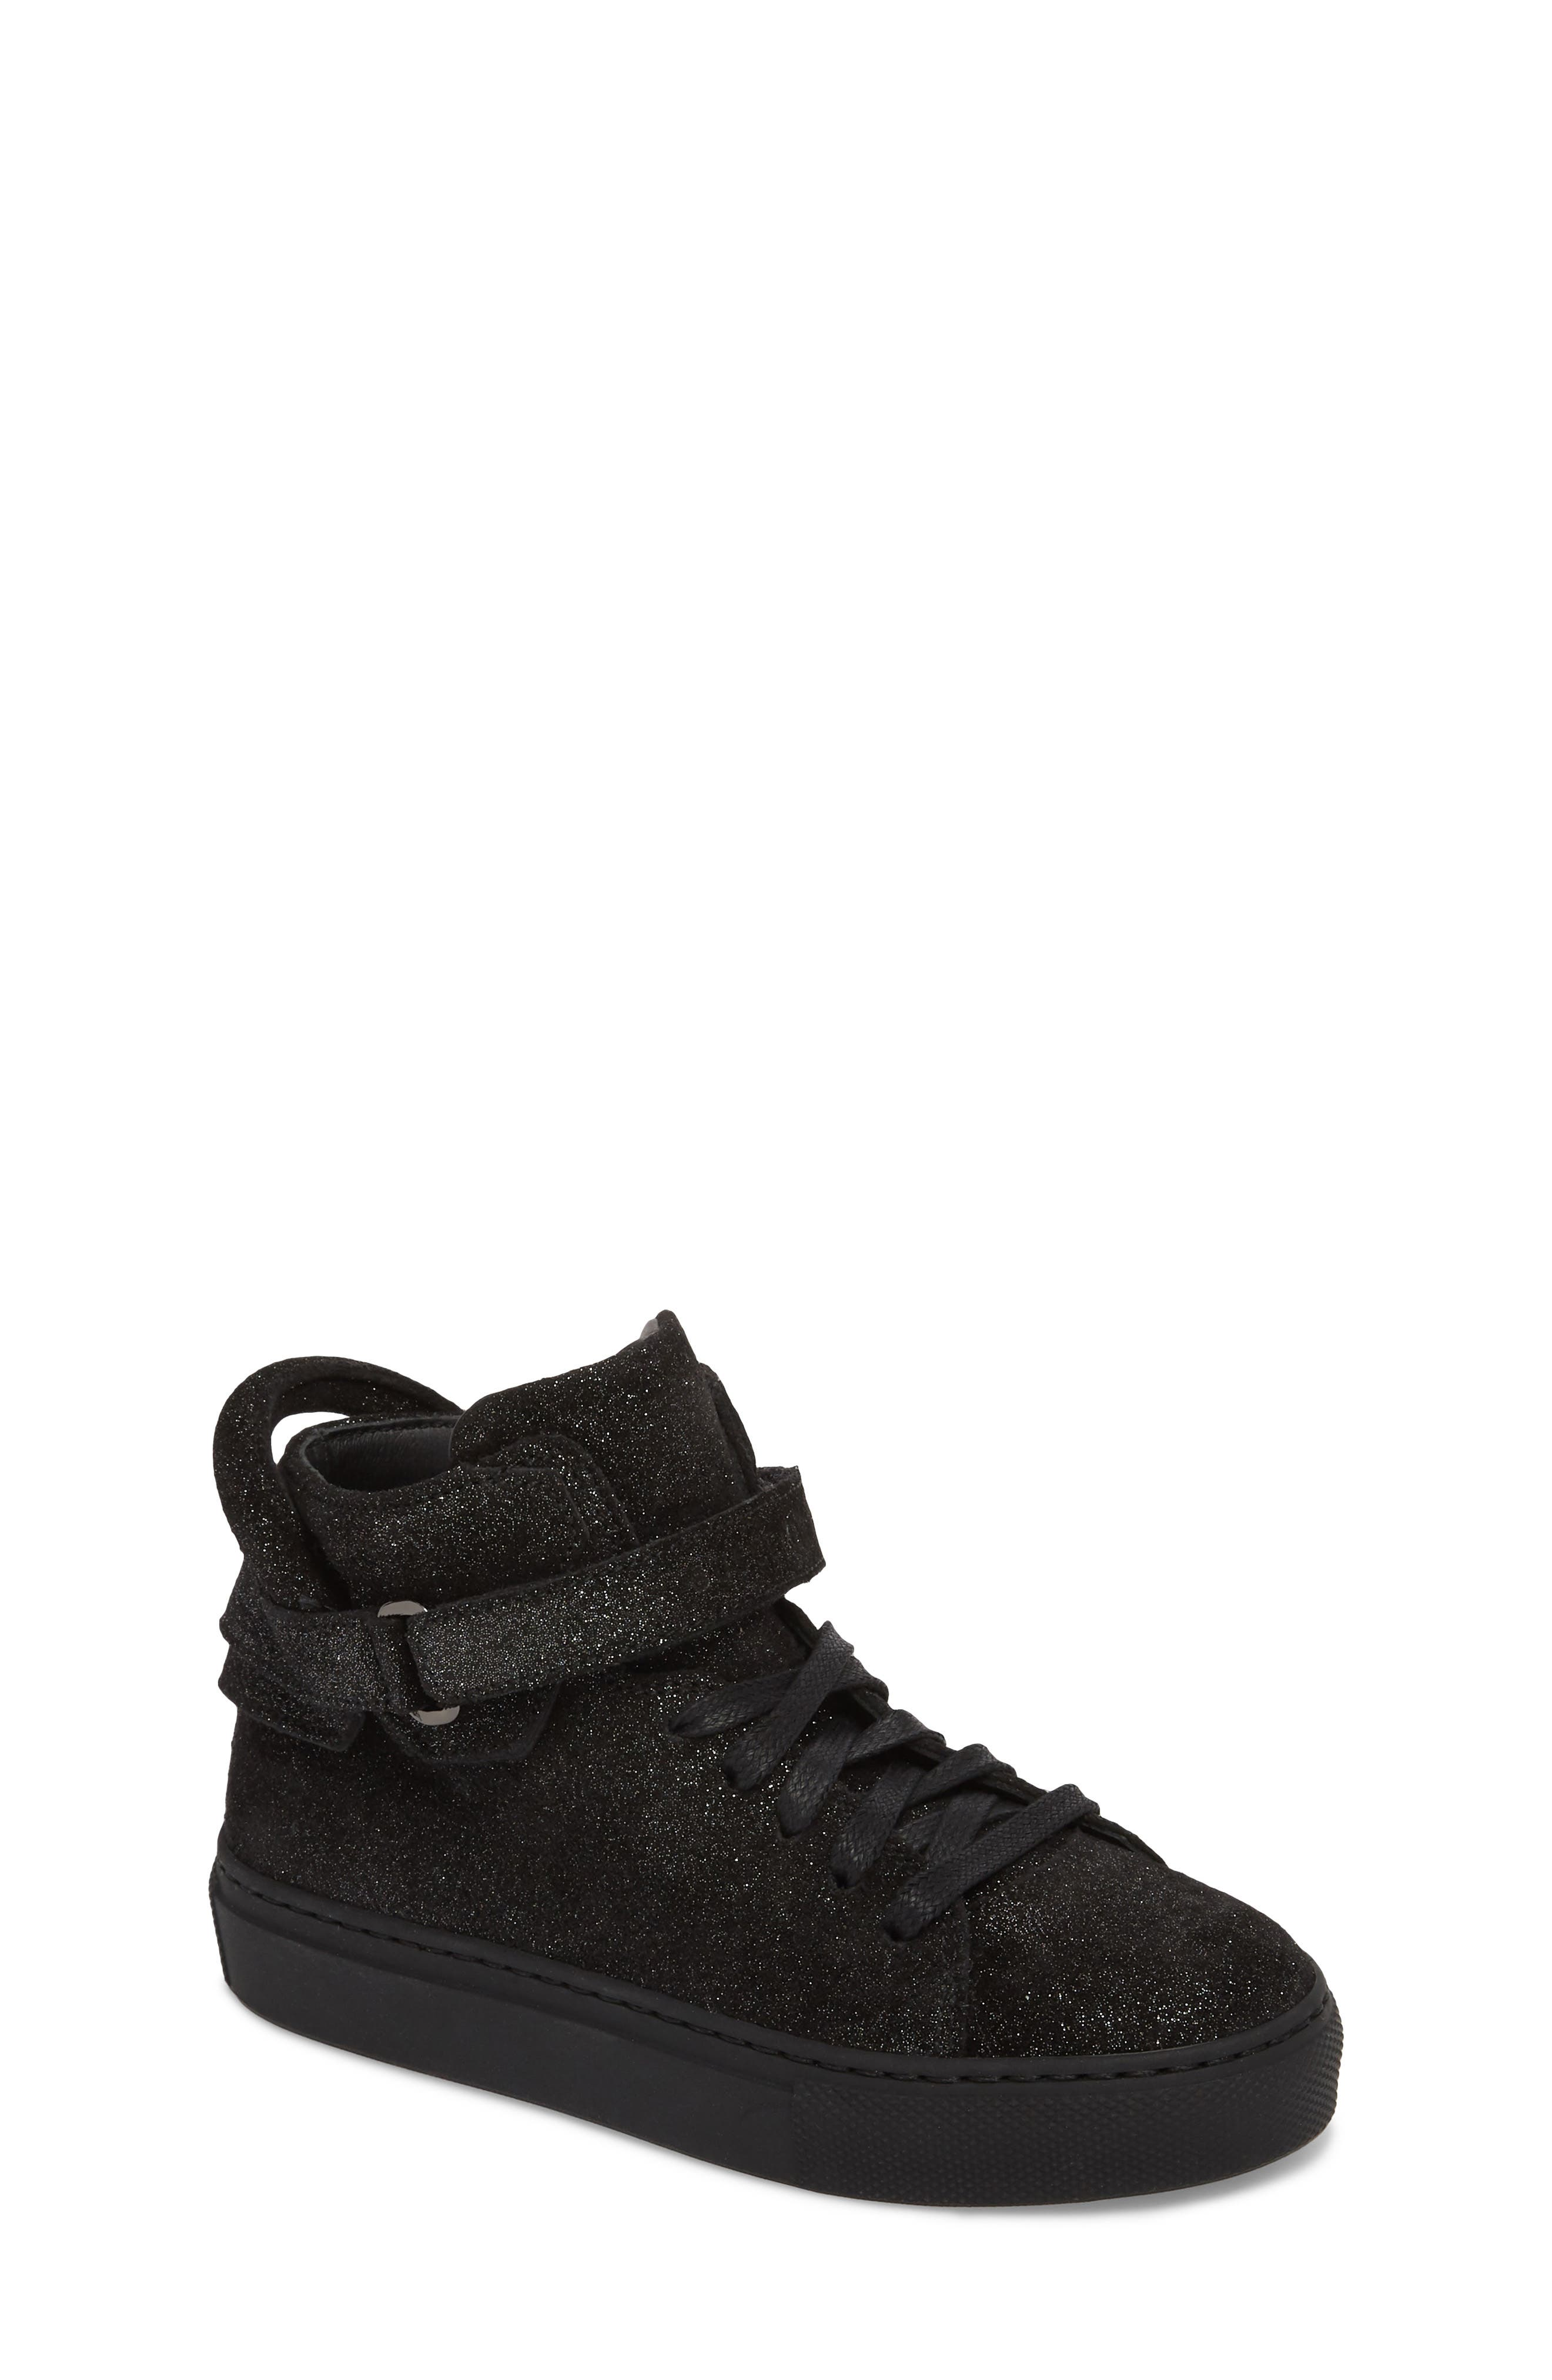 Gleam High Top Sneaker,                         Main,                         color, 001